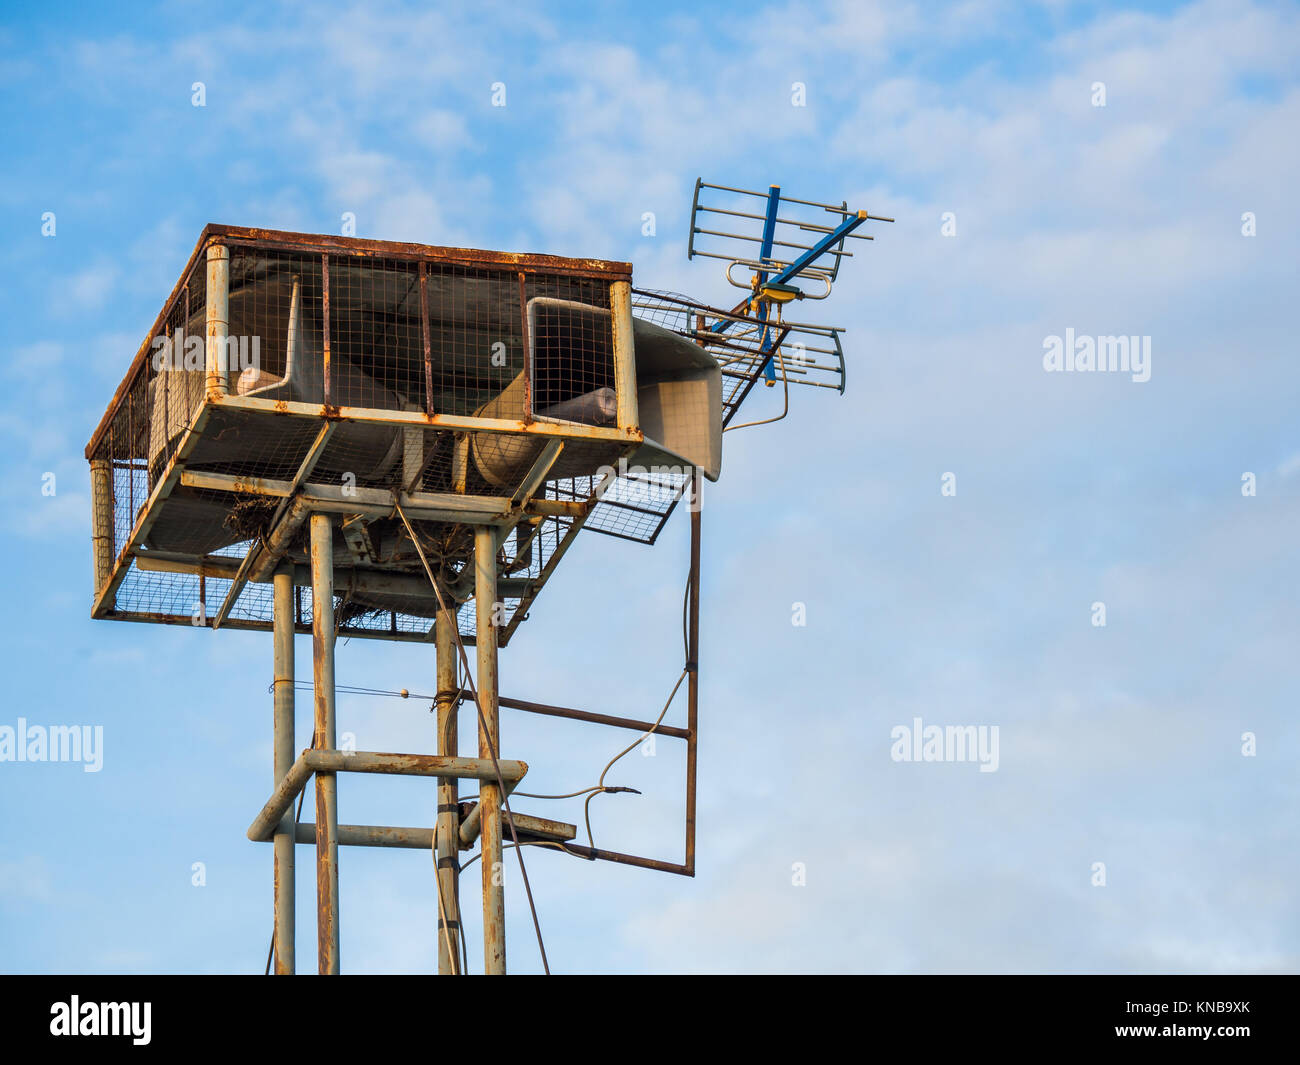 Old public loudspeakers broadcast vintage style on high tower the blue sky background - Stock Image